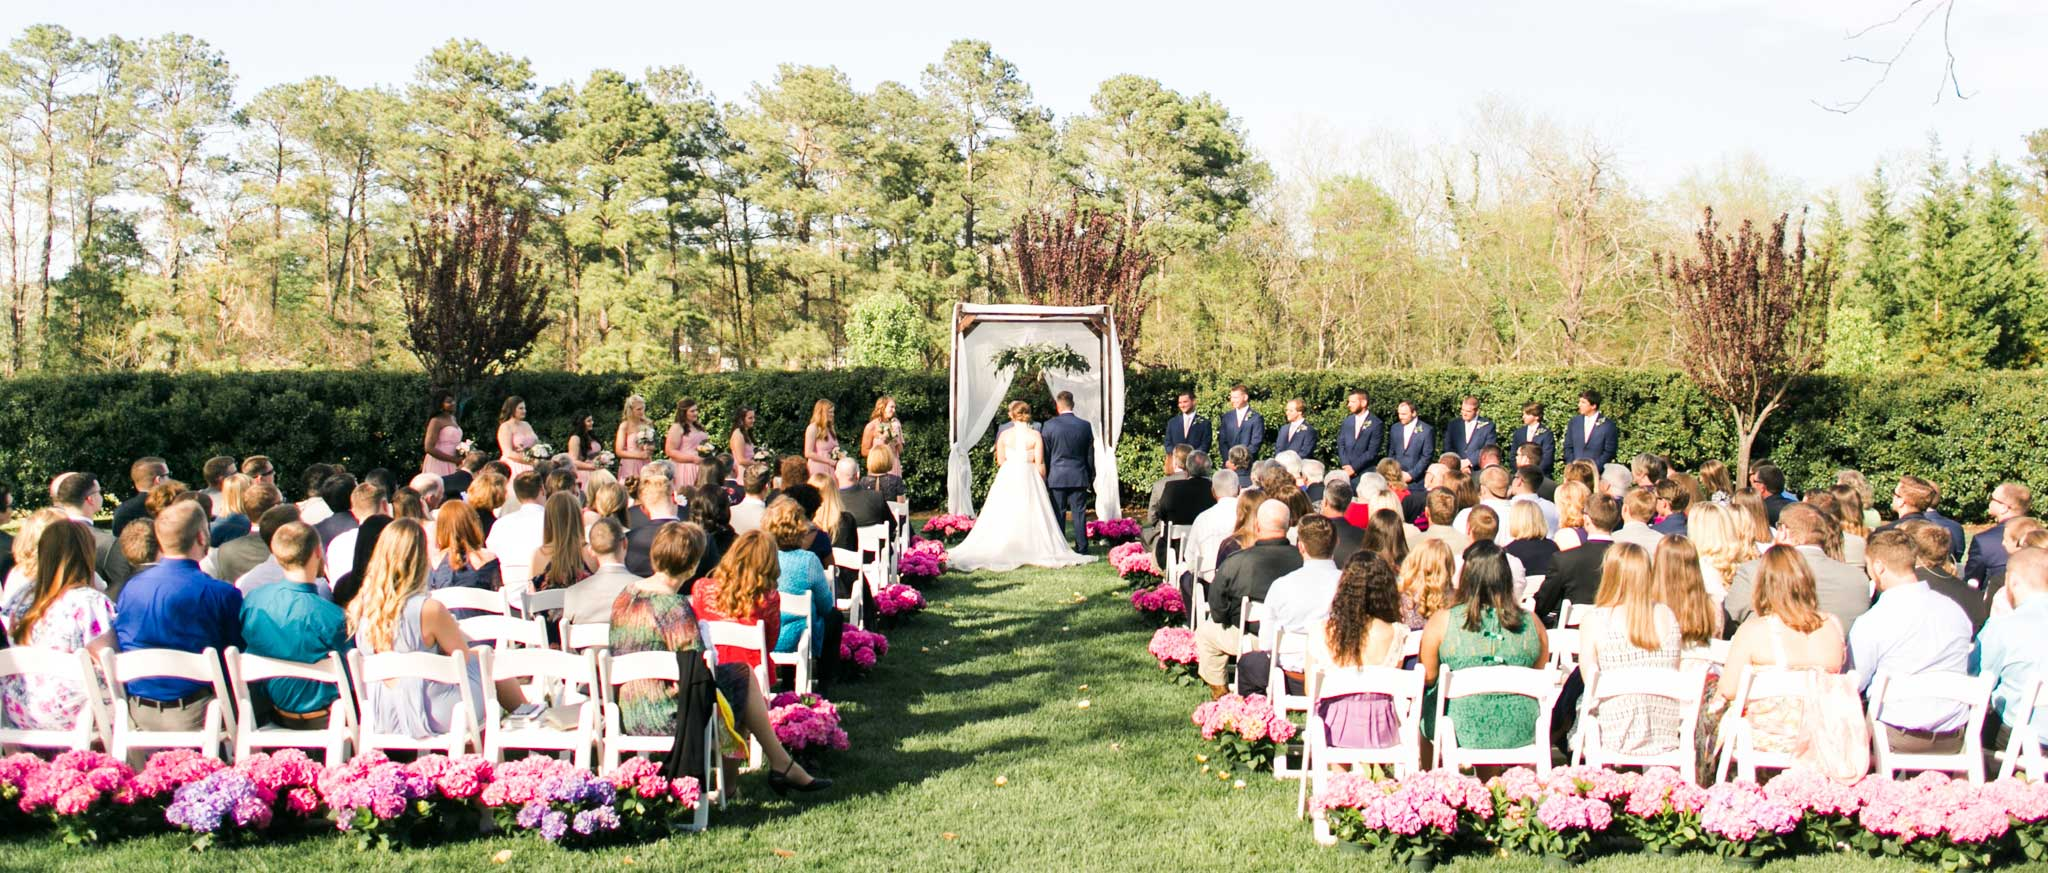 Raleigh Outdoor Wedding Venue Rustic Farm Style Cary Garner